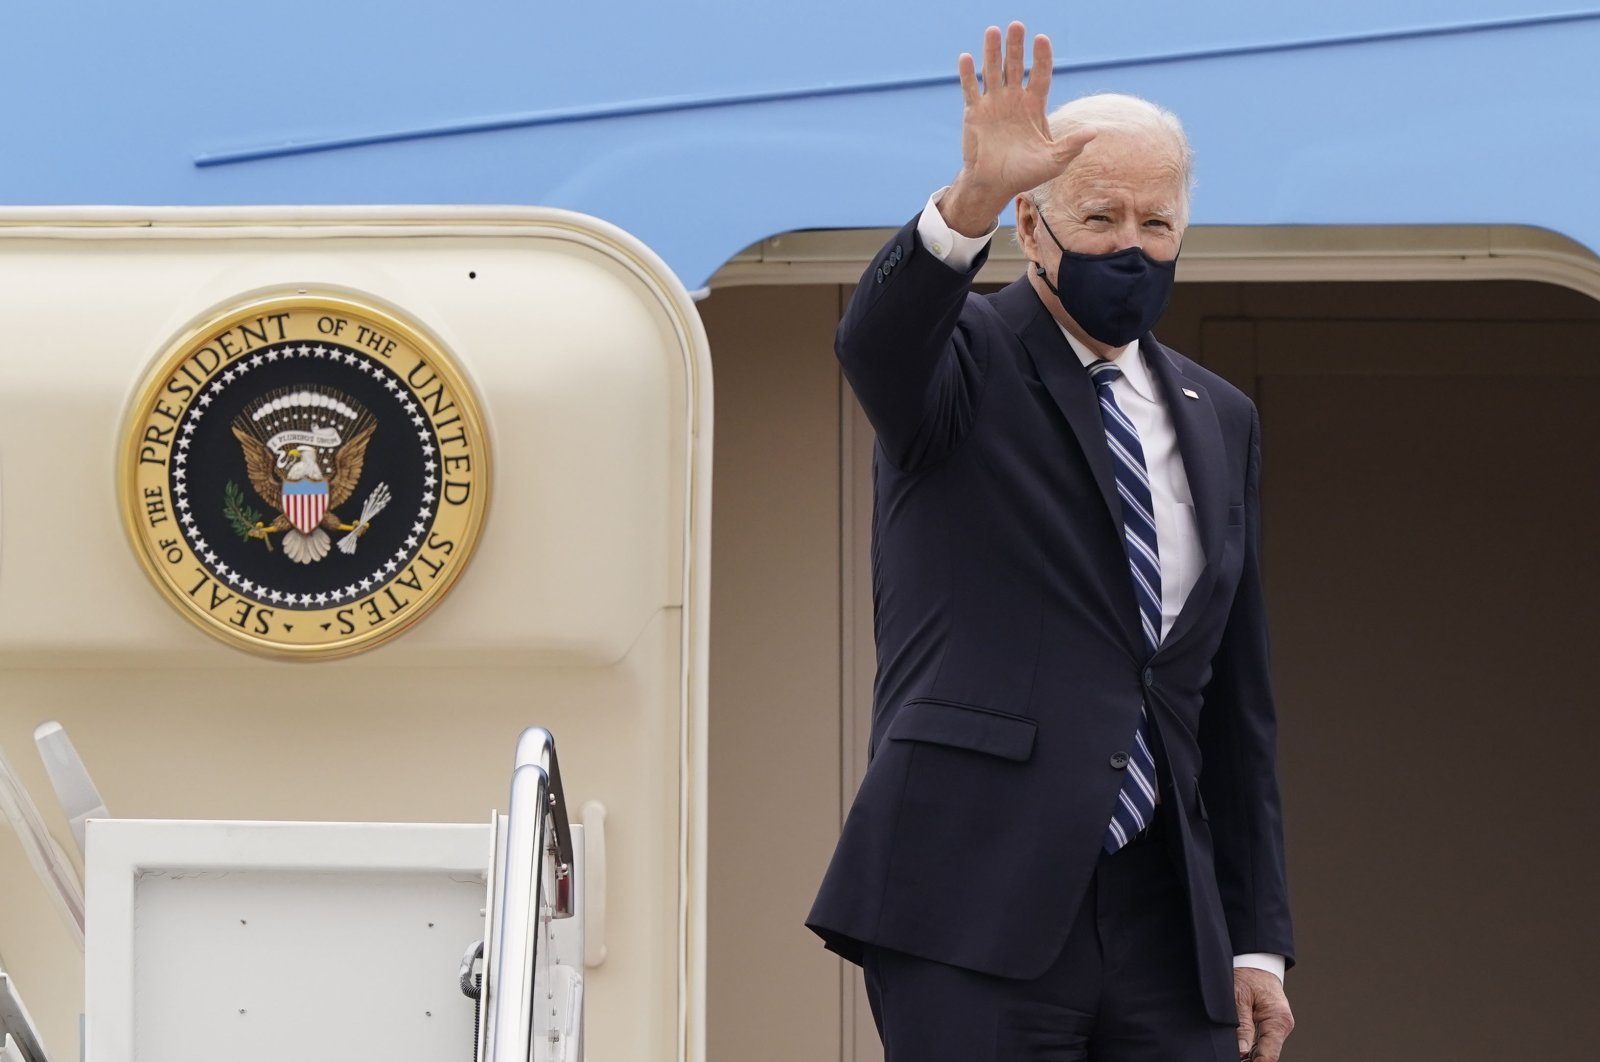 U.S. President Joe Biden waves from the top of the steps of Air Force One as he prepares to depart for a trip to Pennsylvania, at Andrews Air Force Base, Maryland, U.S., March 16, 2021. (AP Photo)